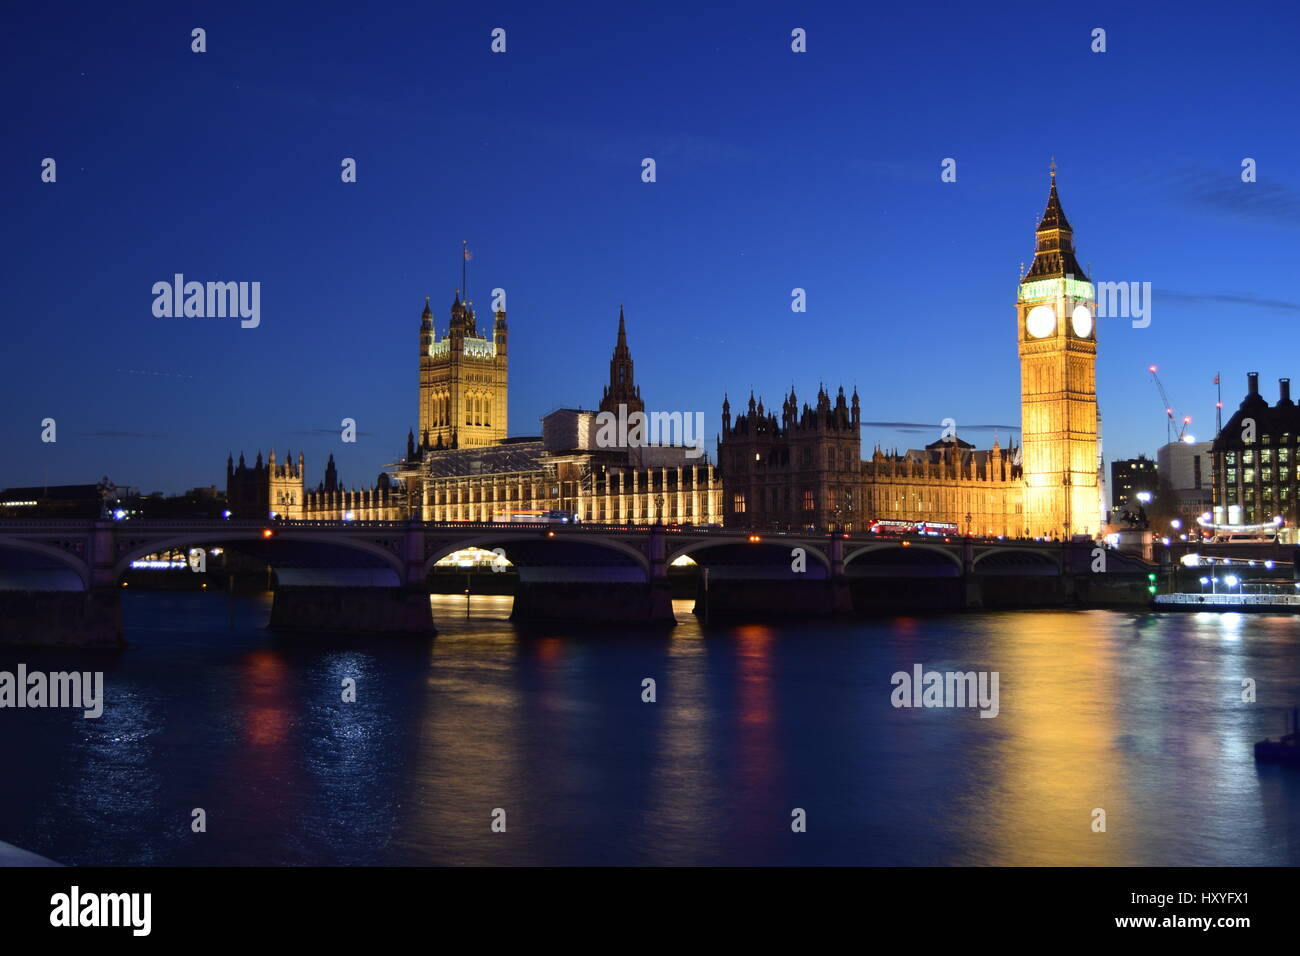 Big Ben and Houses of Parliament at night - Stock Image